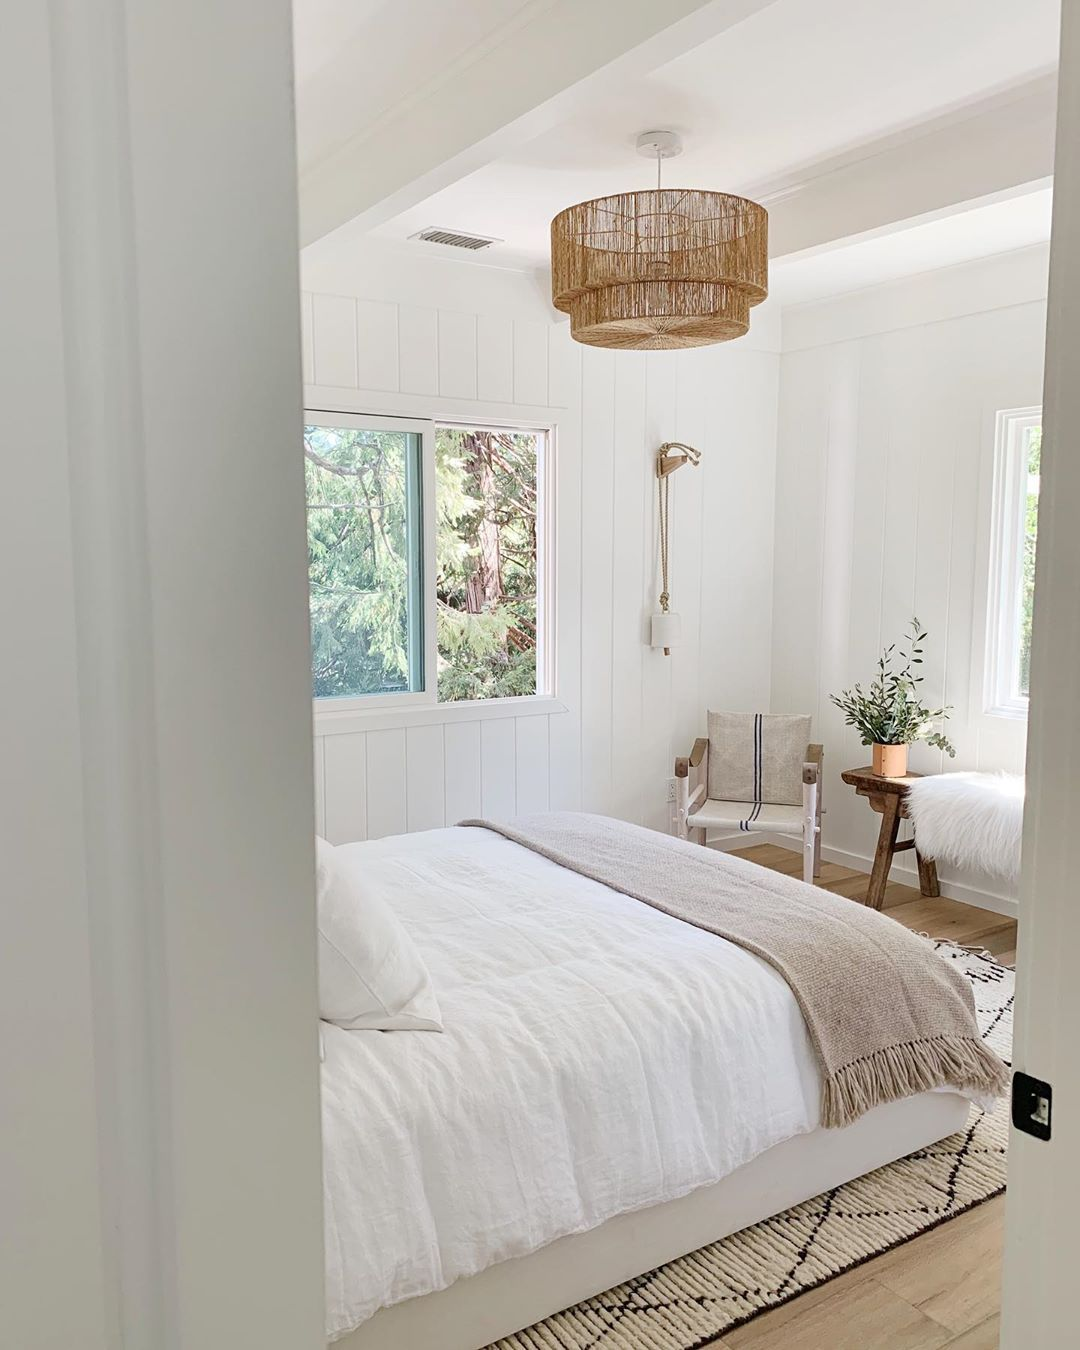 Minimalist neutral bedroom (With images)   Home bedroom ...